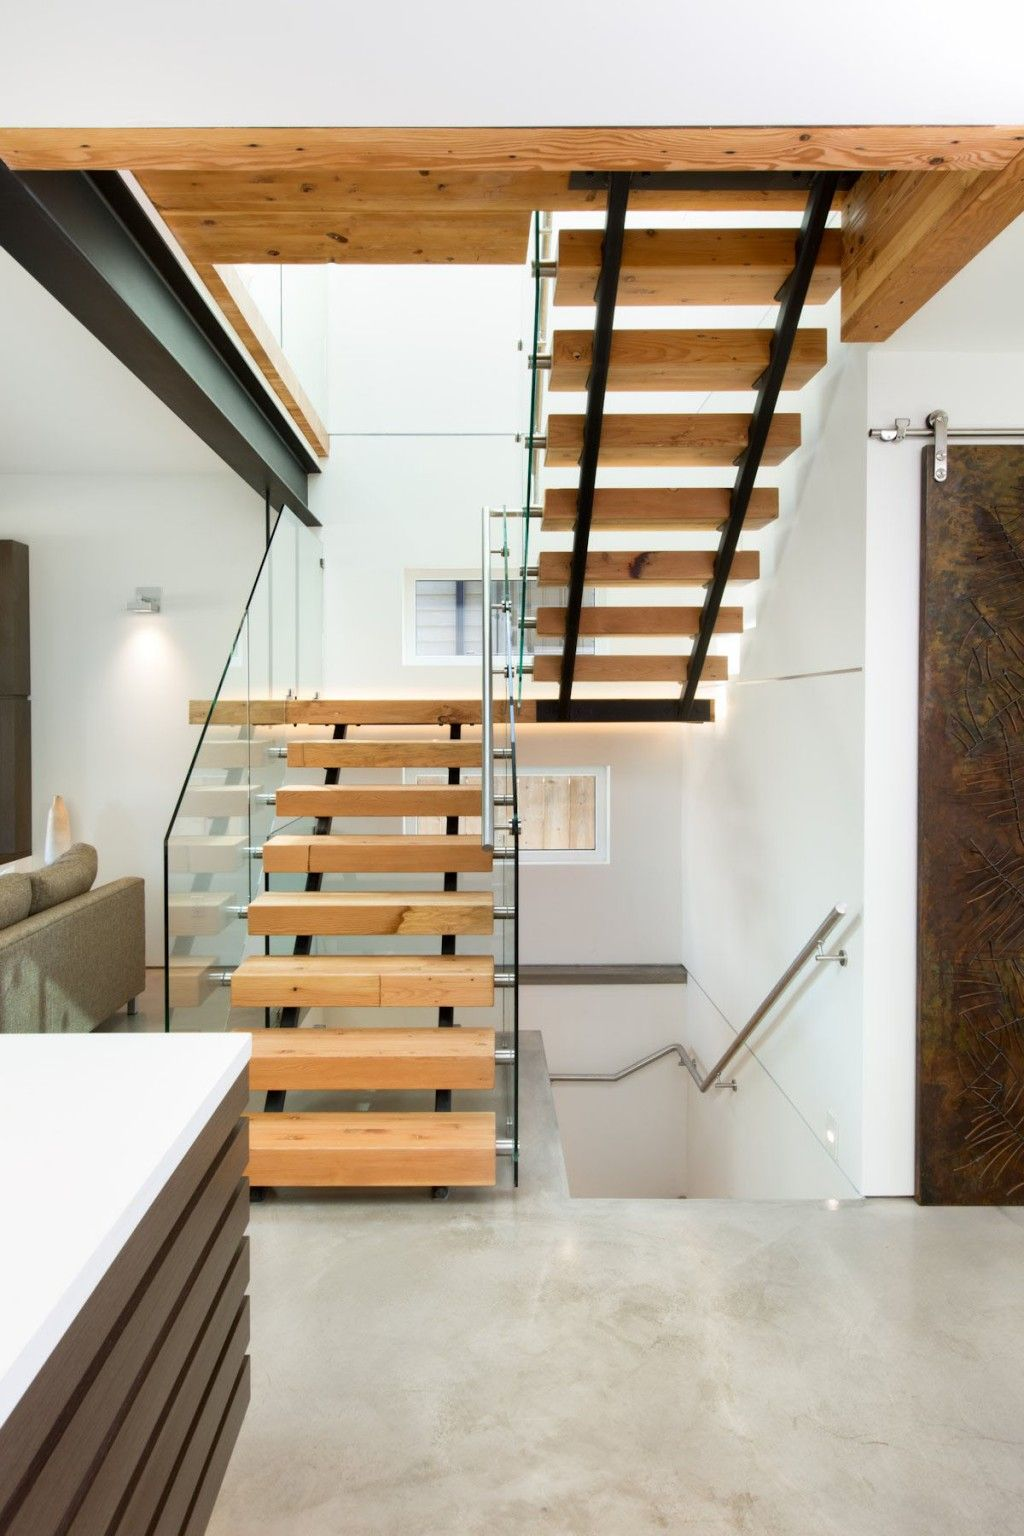 Modern Staircase Collection For Your Inspiration Glass Railing Contemporary Interior Design